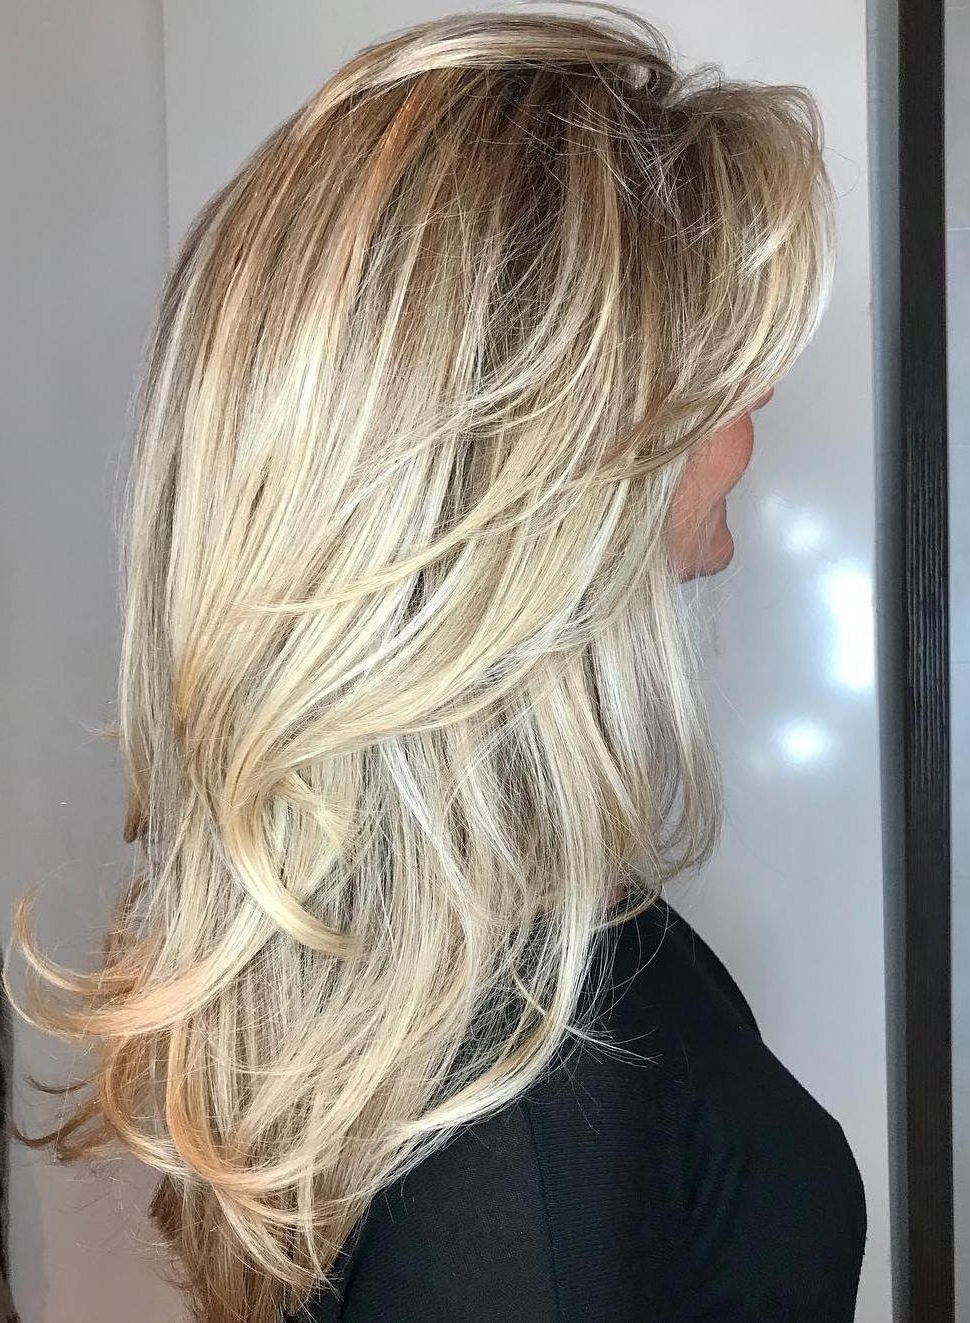 50 Cute Long Layered Haircuts With Bangs 2018 In Well Known Textured Medium Length Look Blonde Hairstyles (View 3 of 20)